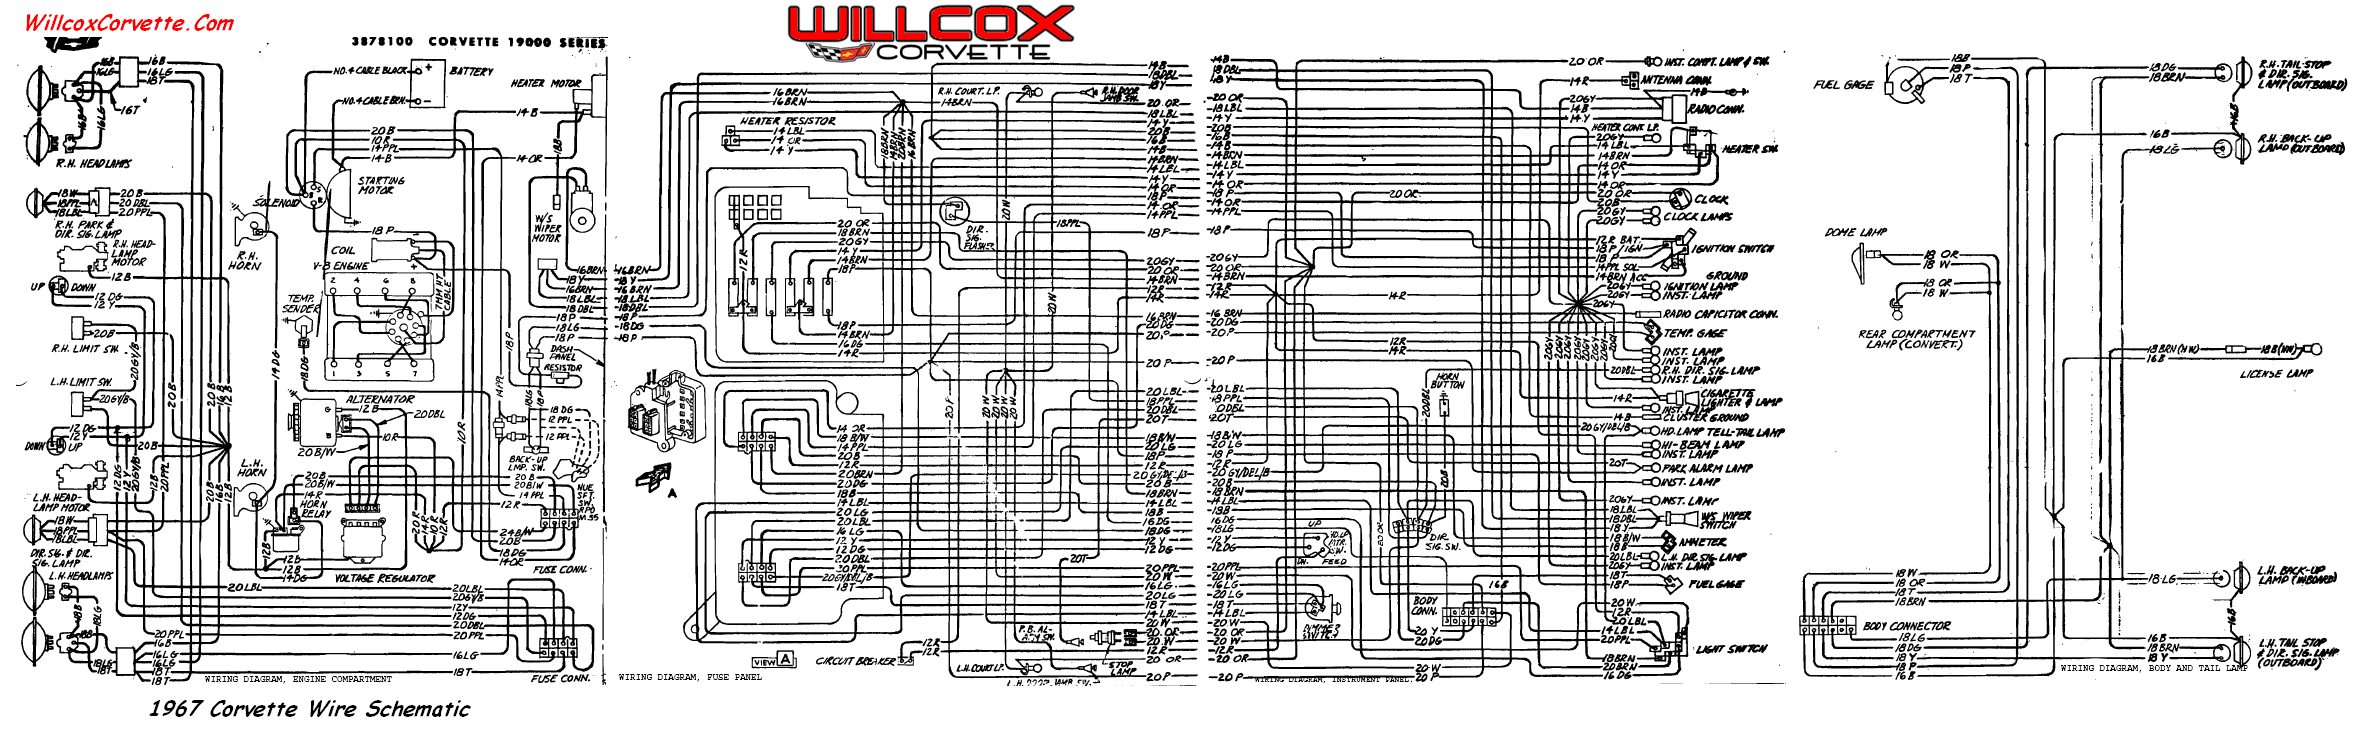 1967 corvette wiring diagram pdf online schematic diagram u2022 rh holyoak co wiring diagram for 1964 corvette distributor 1964 corvette ignition wiring diagram